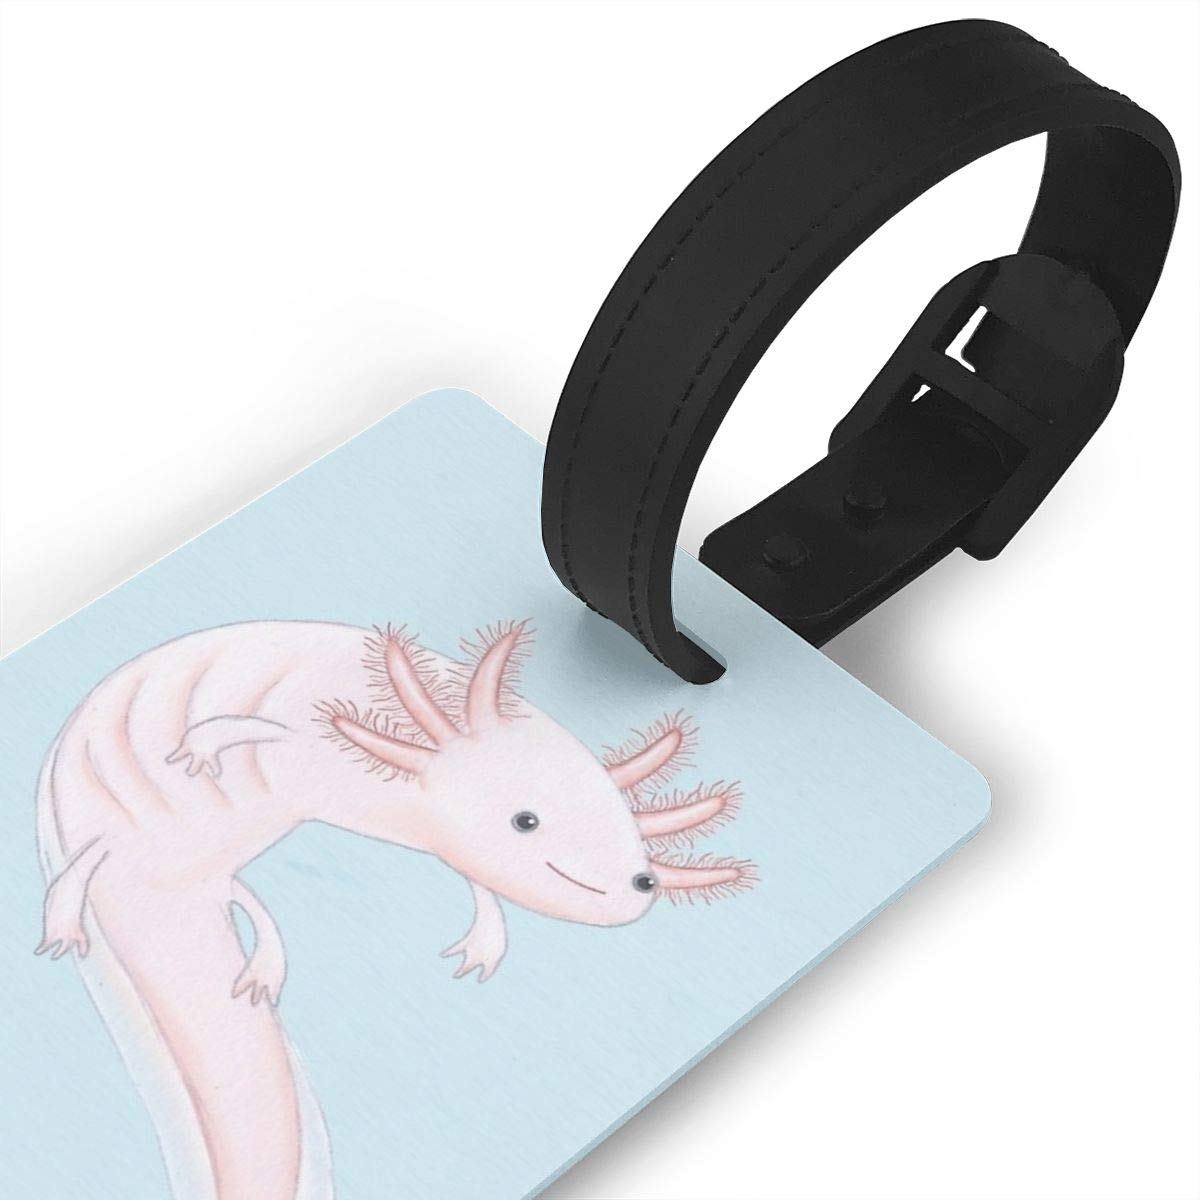 Set of 2 Axolotl Luggage Tags Suitcase Labels Bag Travel Accessories